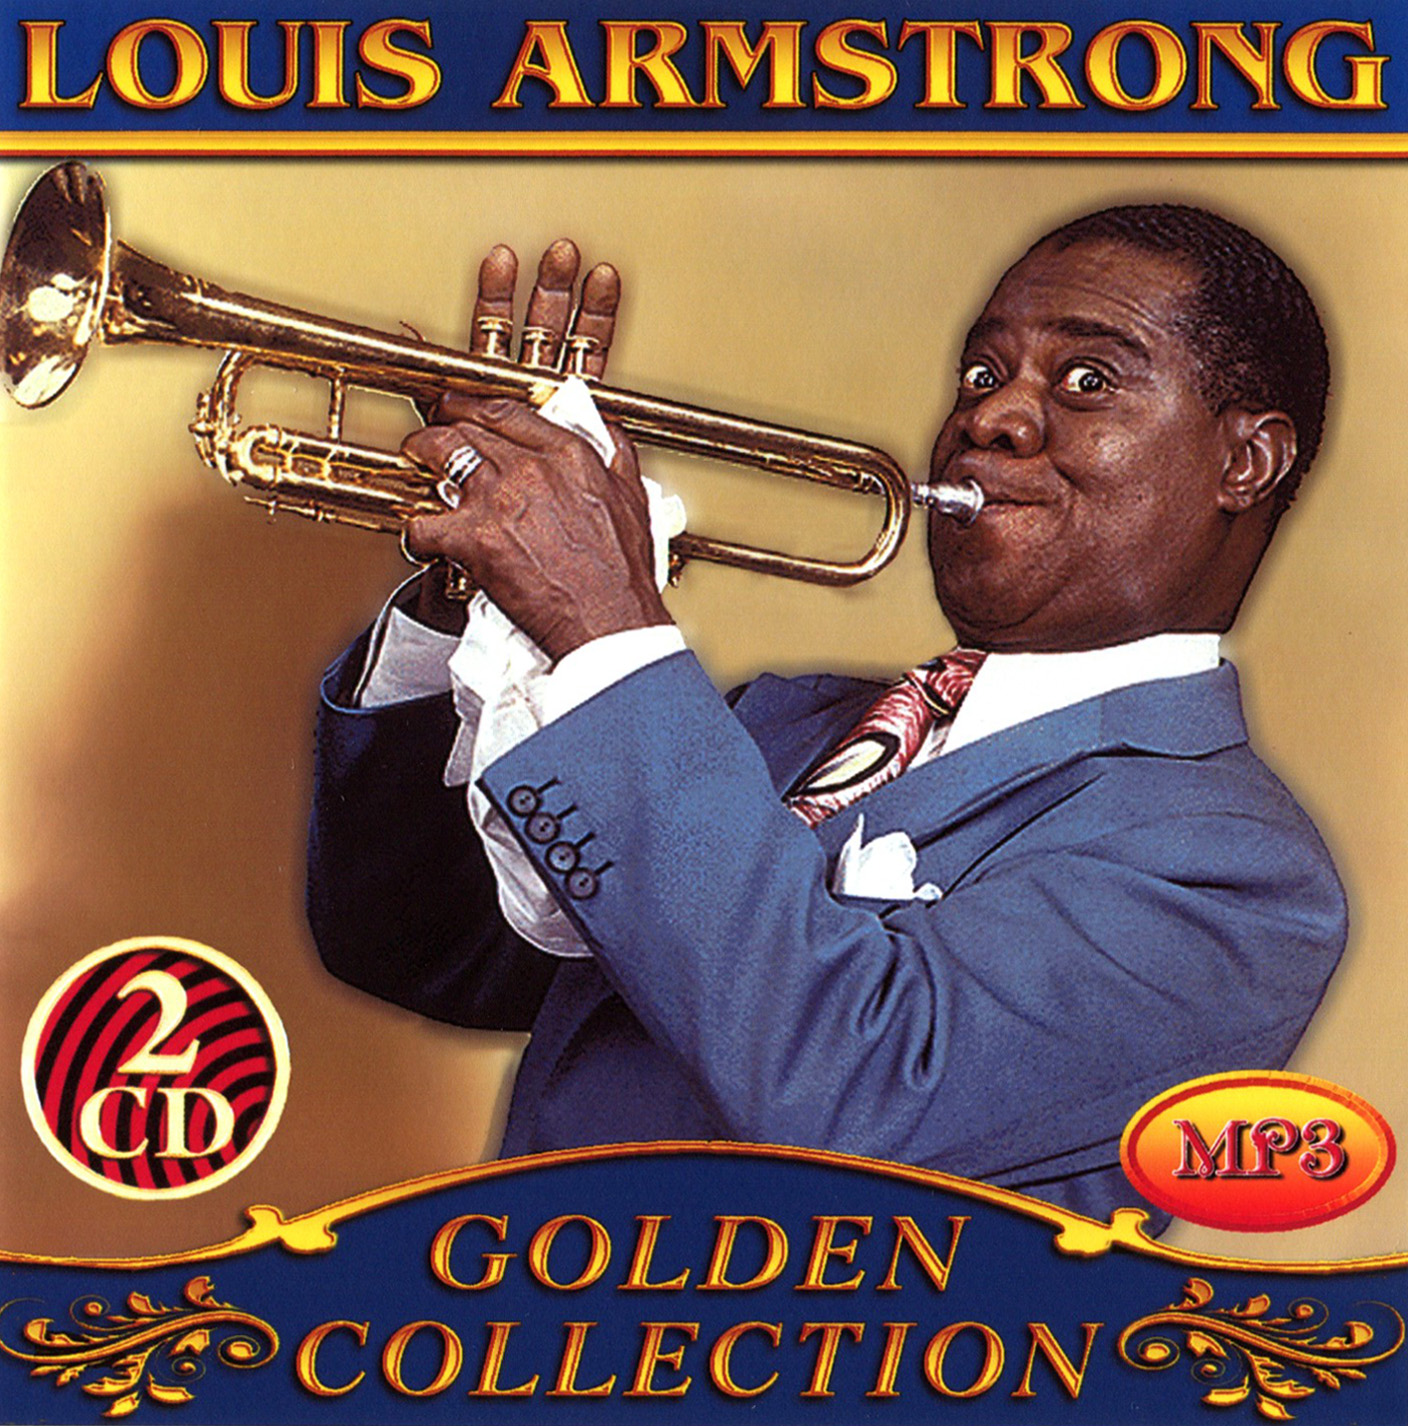 Louis Armstrong 2cd [mp3]